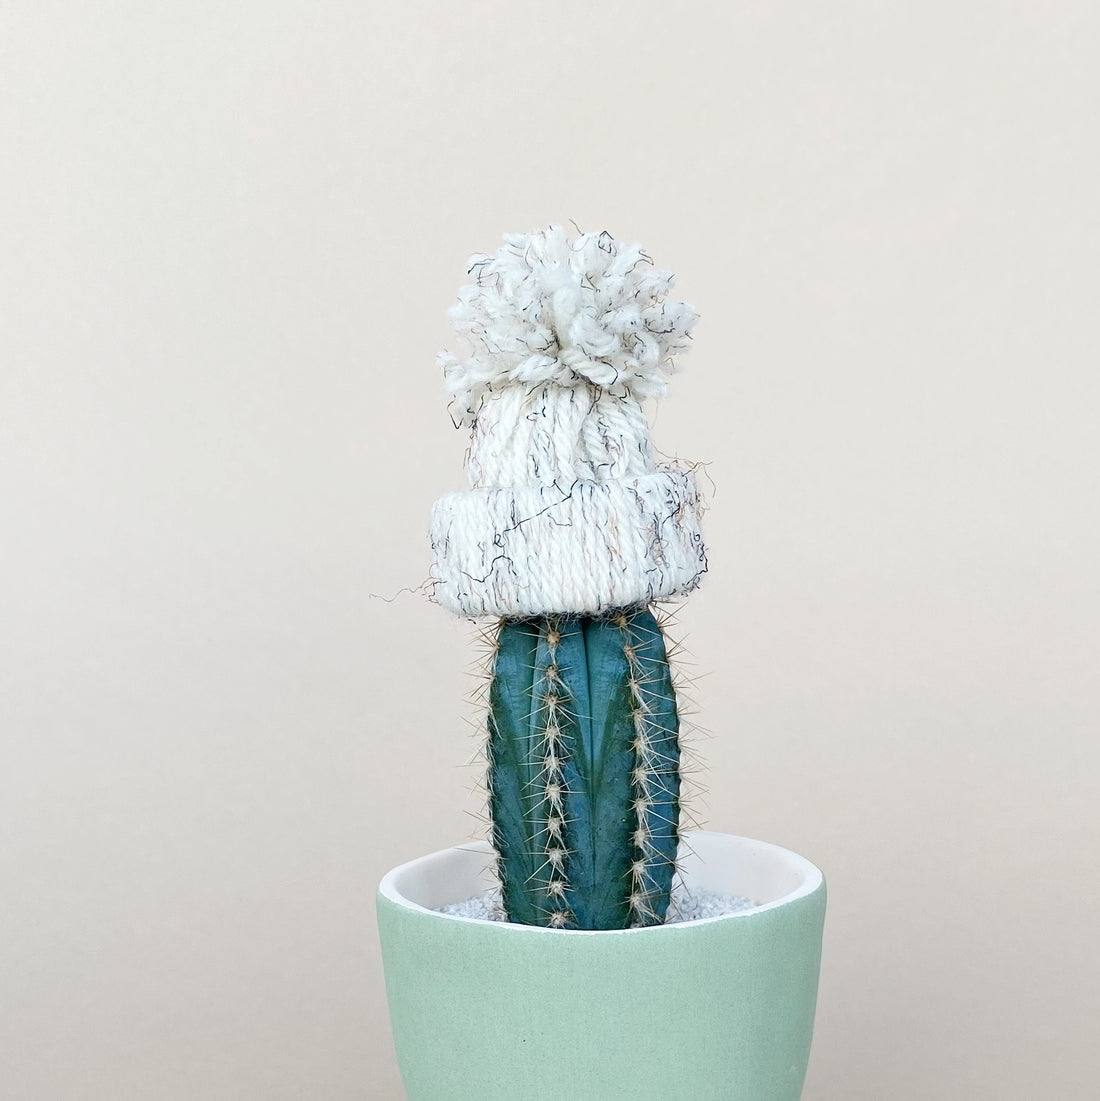 8 Easy Ways to Make Sure Your Plants are Healthy in Winter - Cute Cactus with a Hat on top